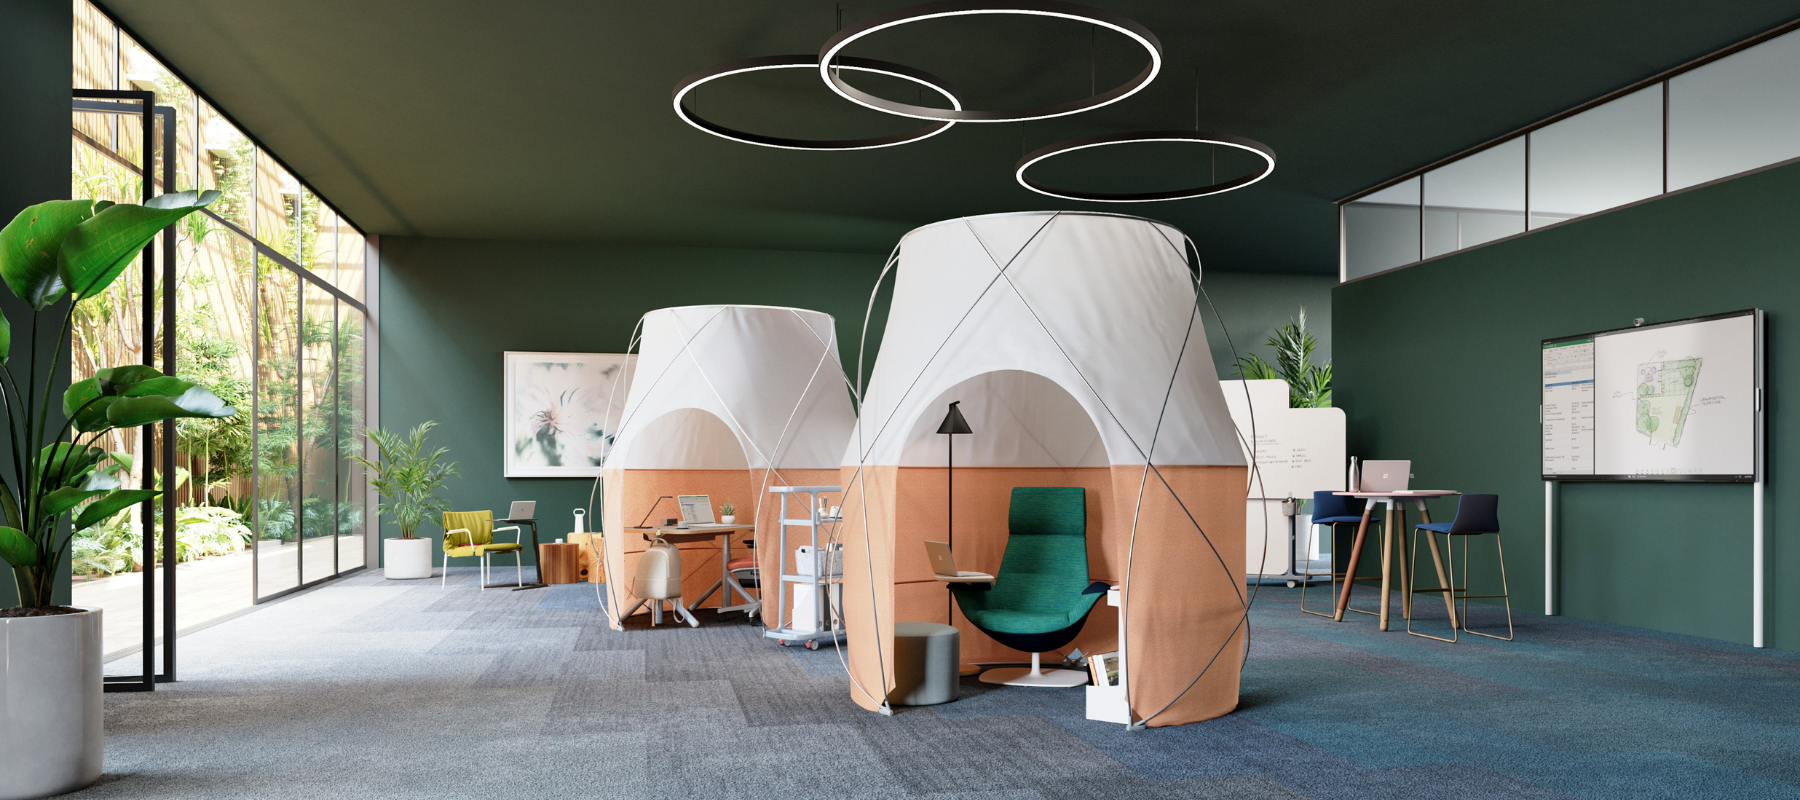 tents that serve as focus spaces in the hybrid workplace